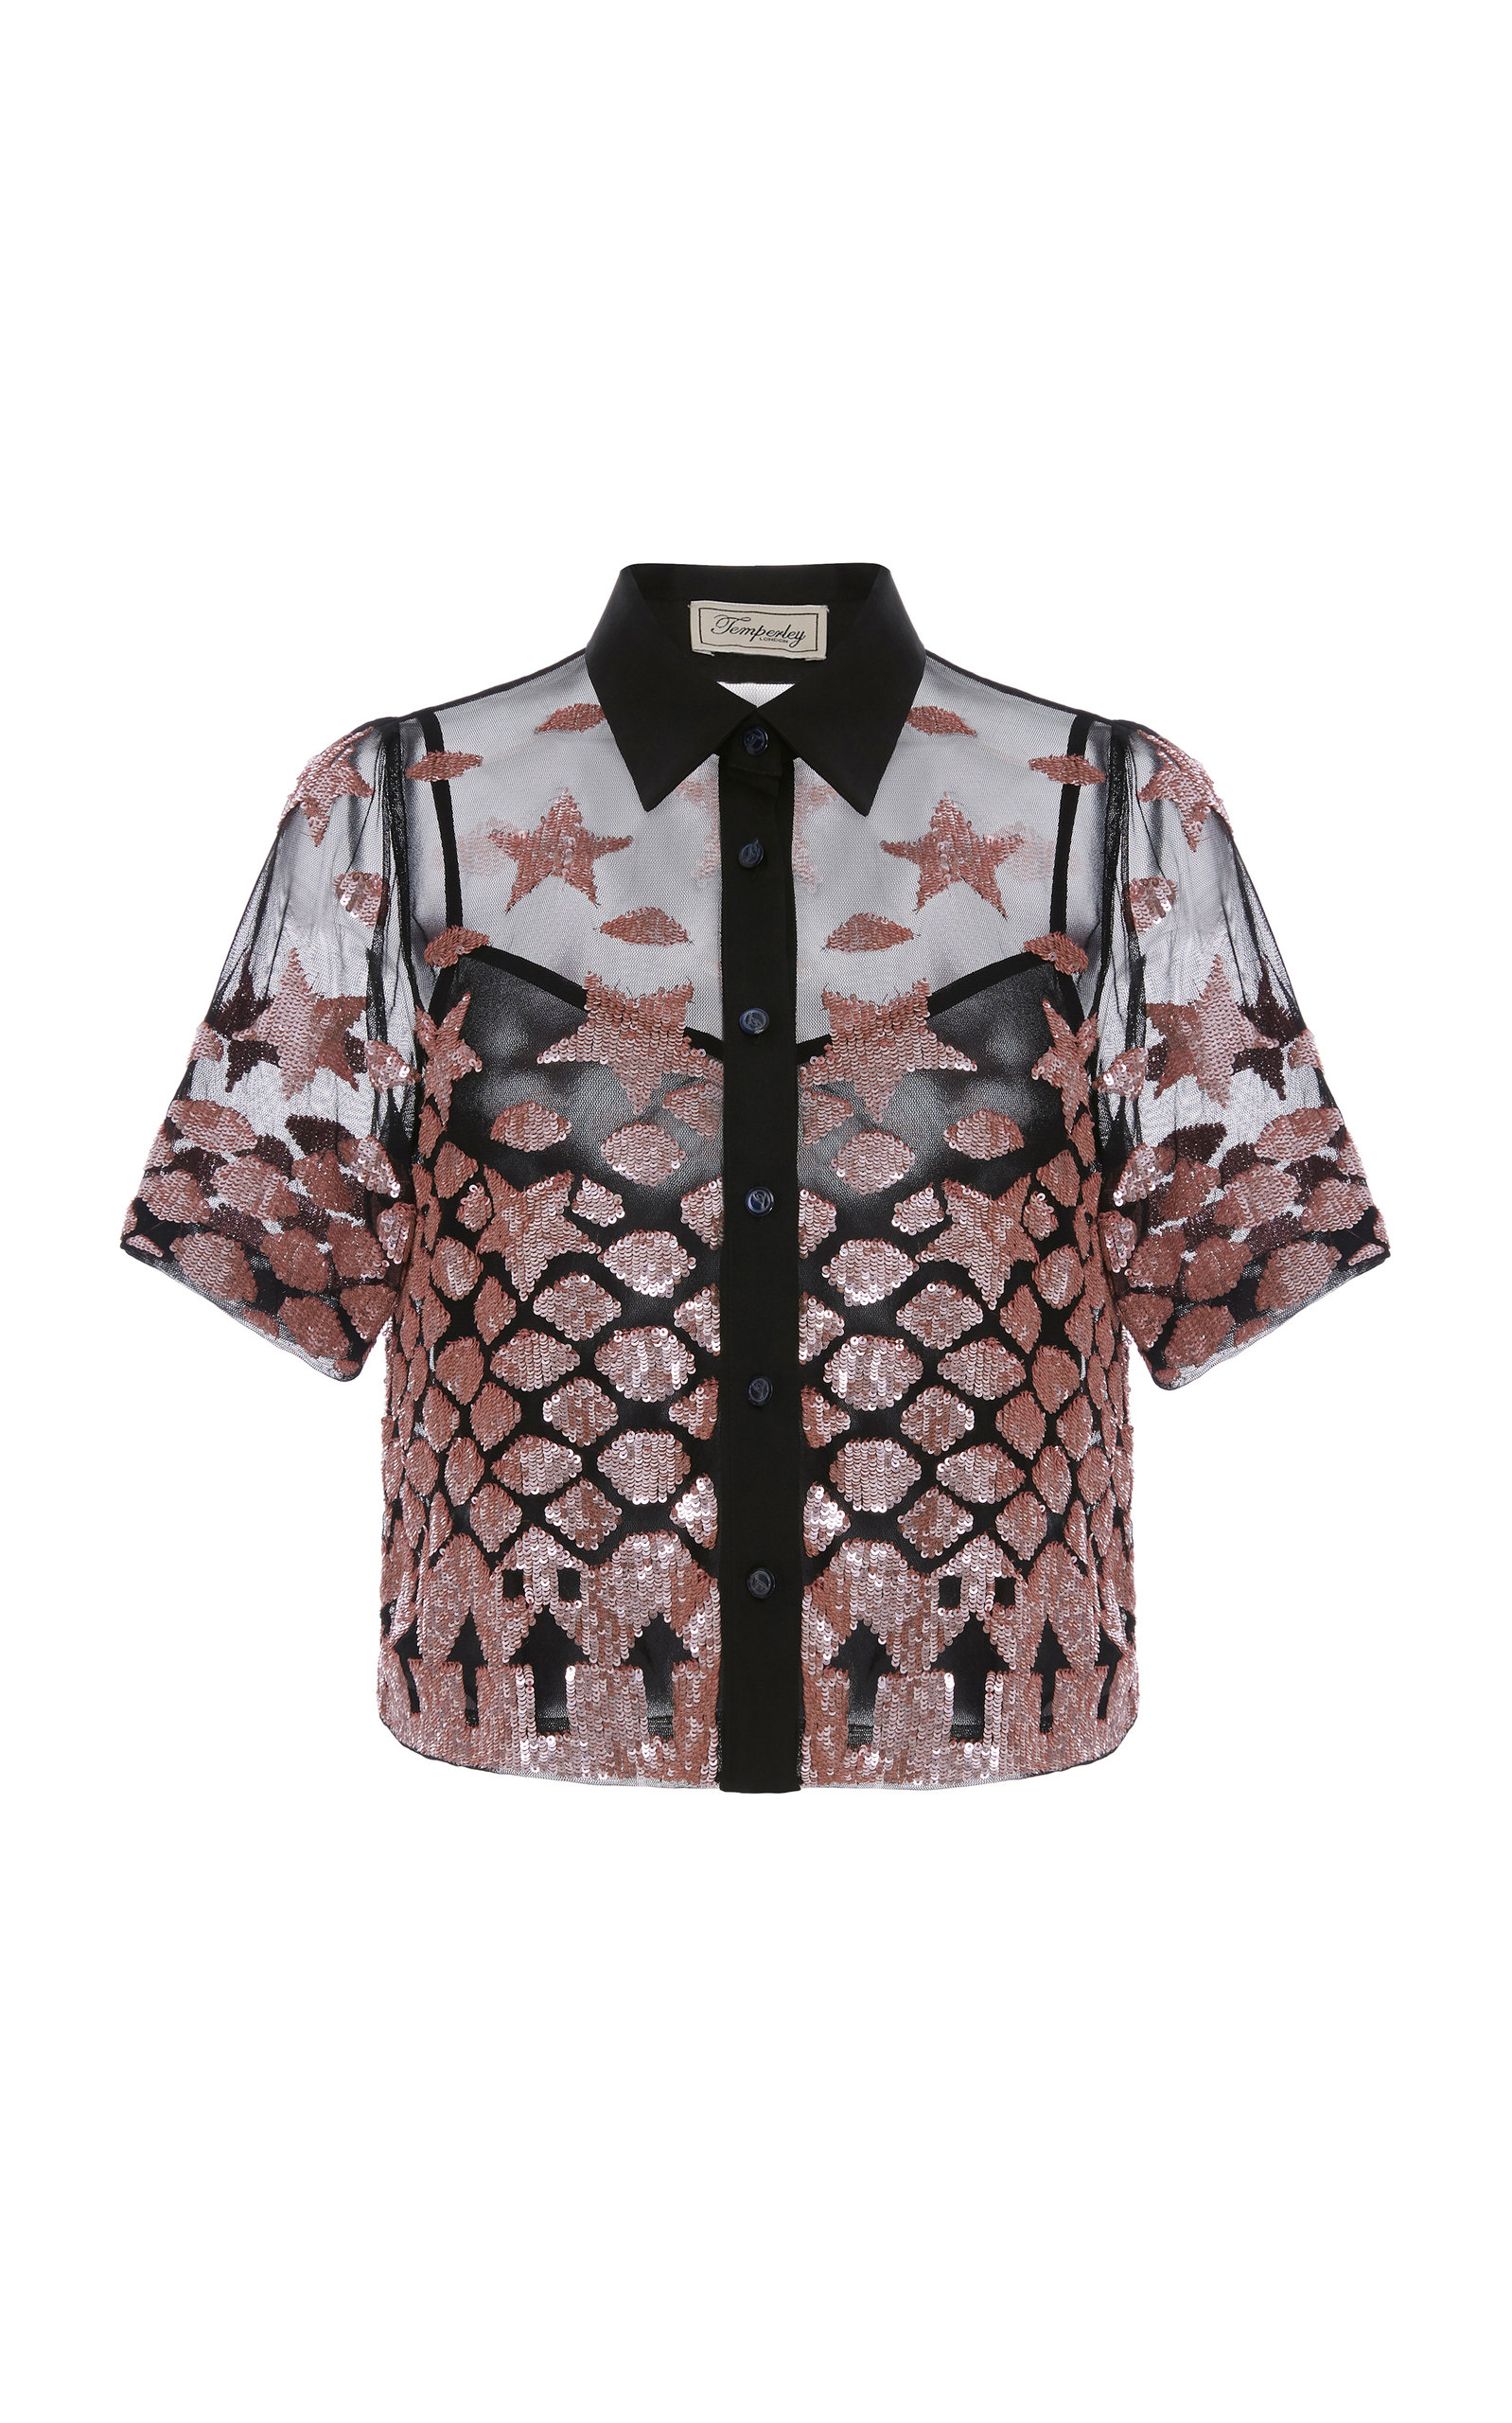 Temperley London STARLET SHIRT